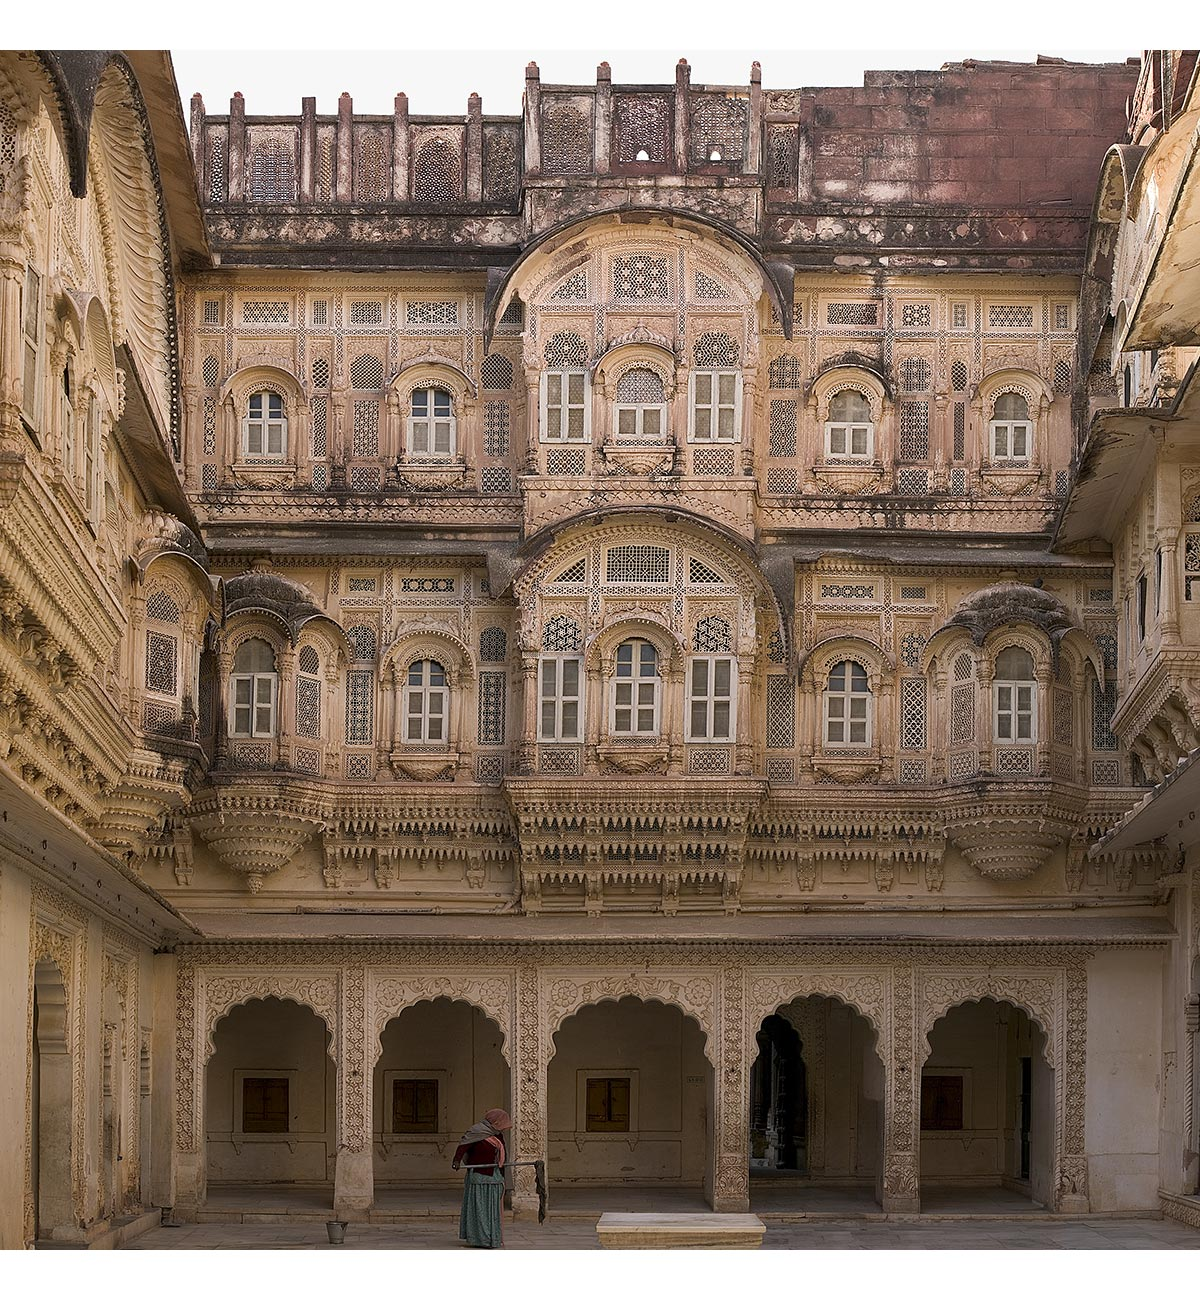 Paul Grundy. Zenana, The Purple Fort,  Jodhpur